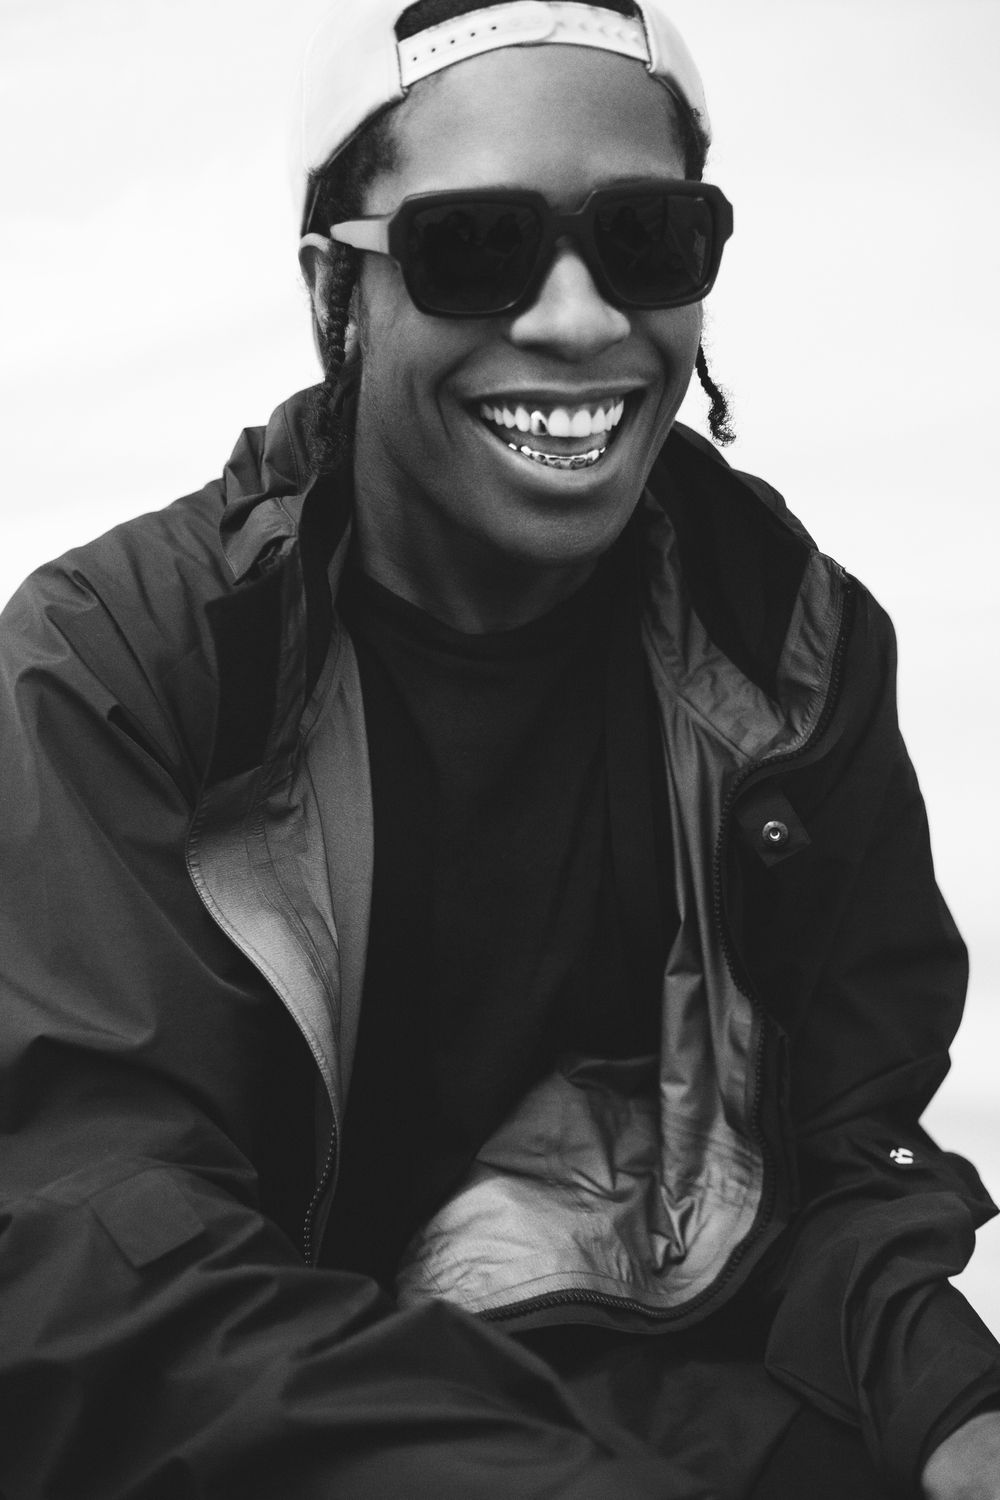 Asap Rocky for WESC shot by Anton Ostlund Asap rocky